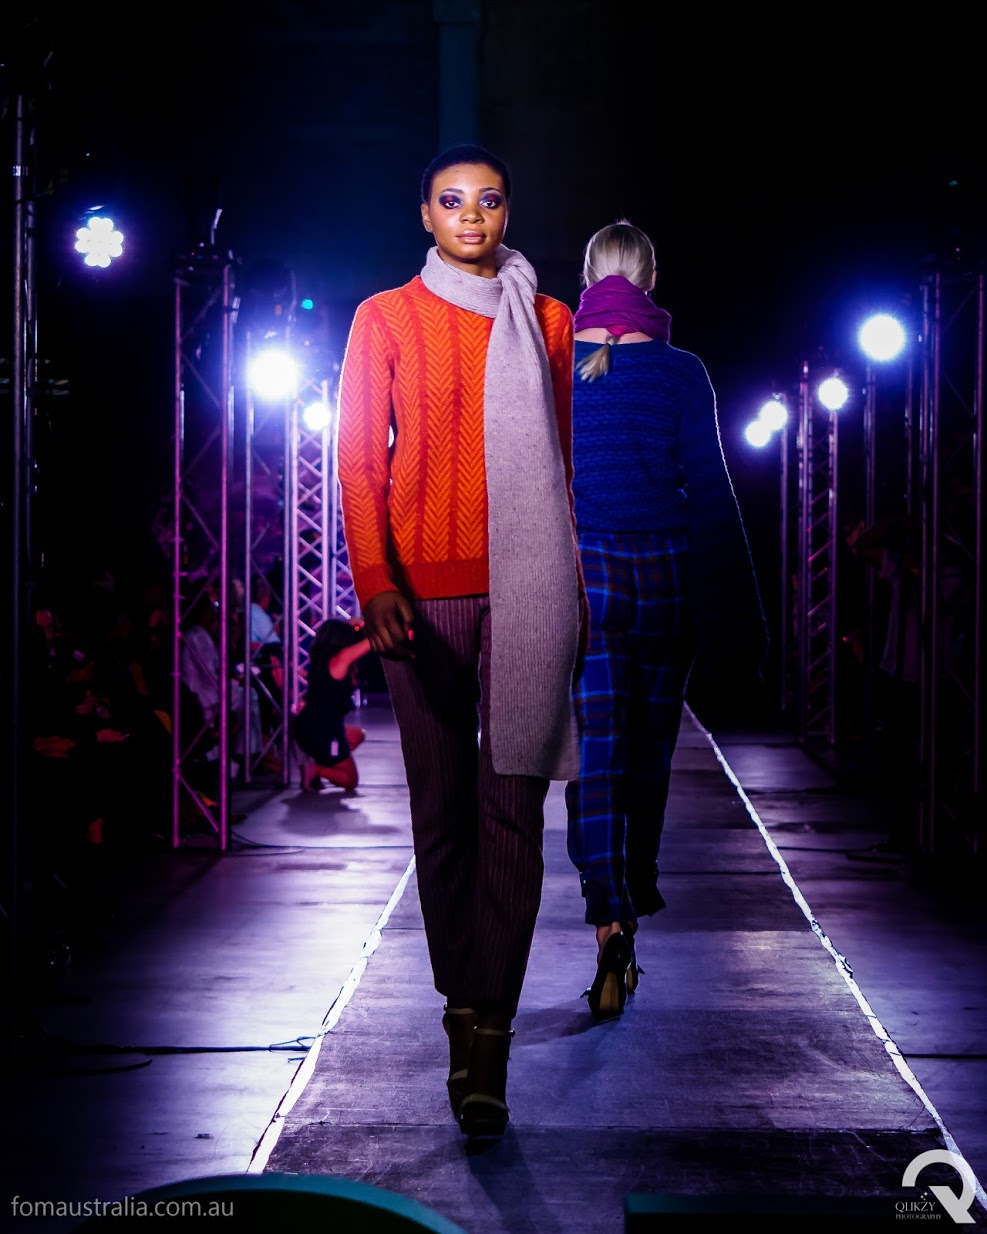 Anne McConnell's knitwear on the runway at FOMA 2019